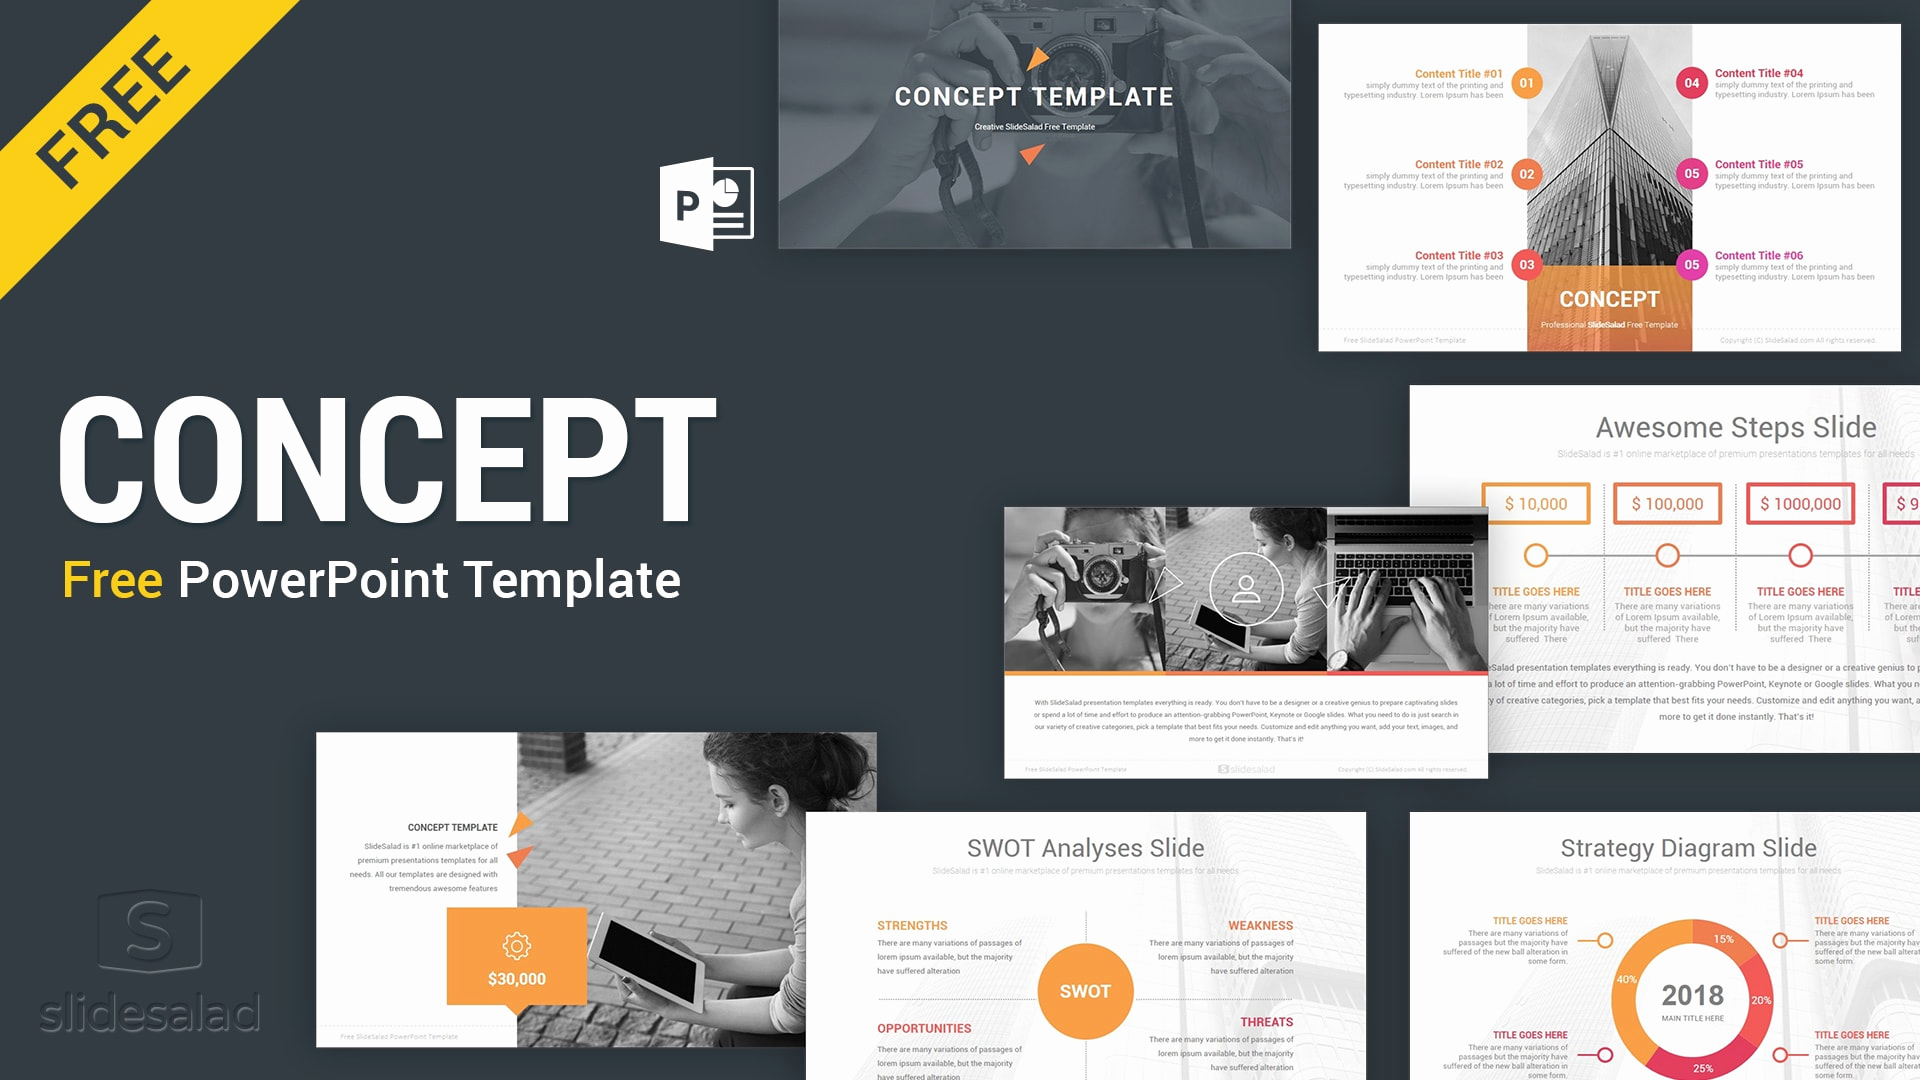 Design Powerpoint Template and Concept Free Powerpoint Presentation Template Free